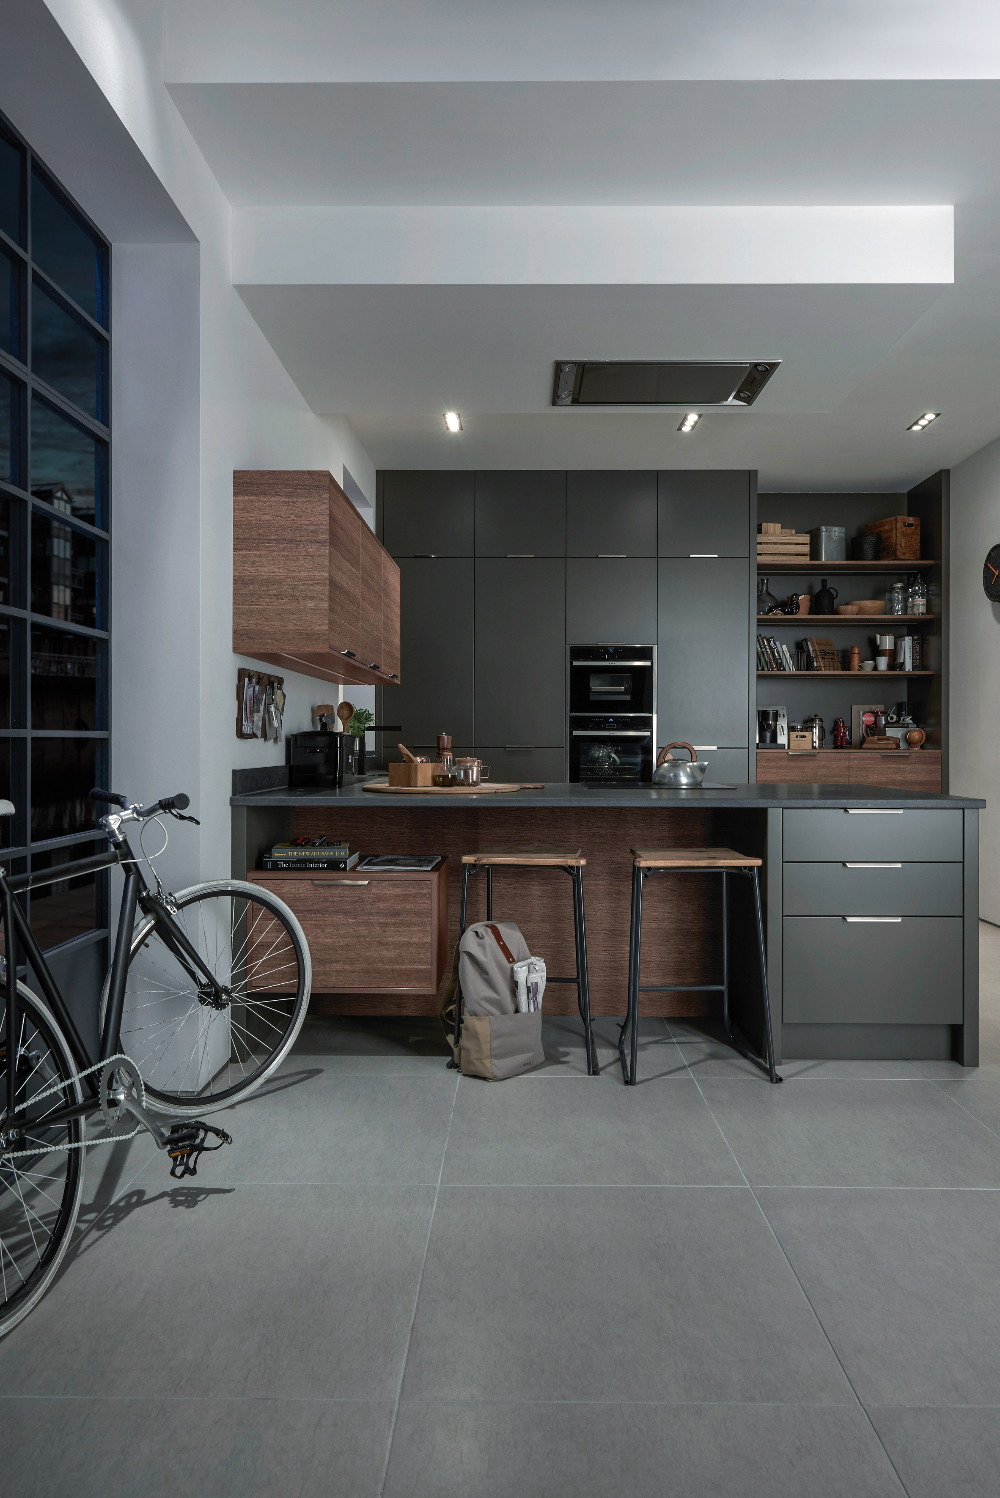 Life Kitchens' first central London showroom features